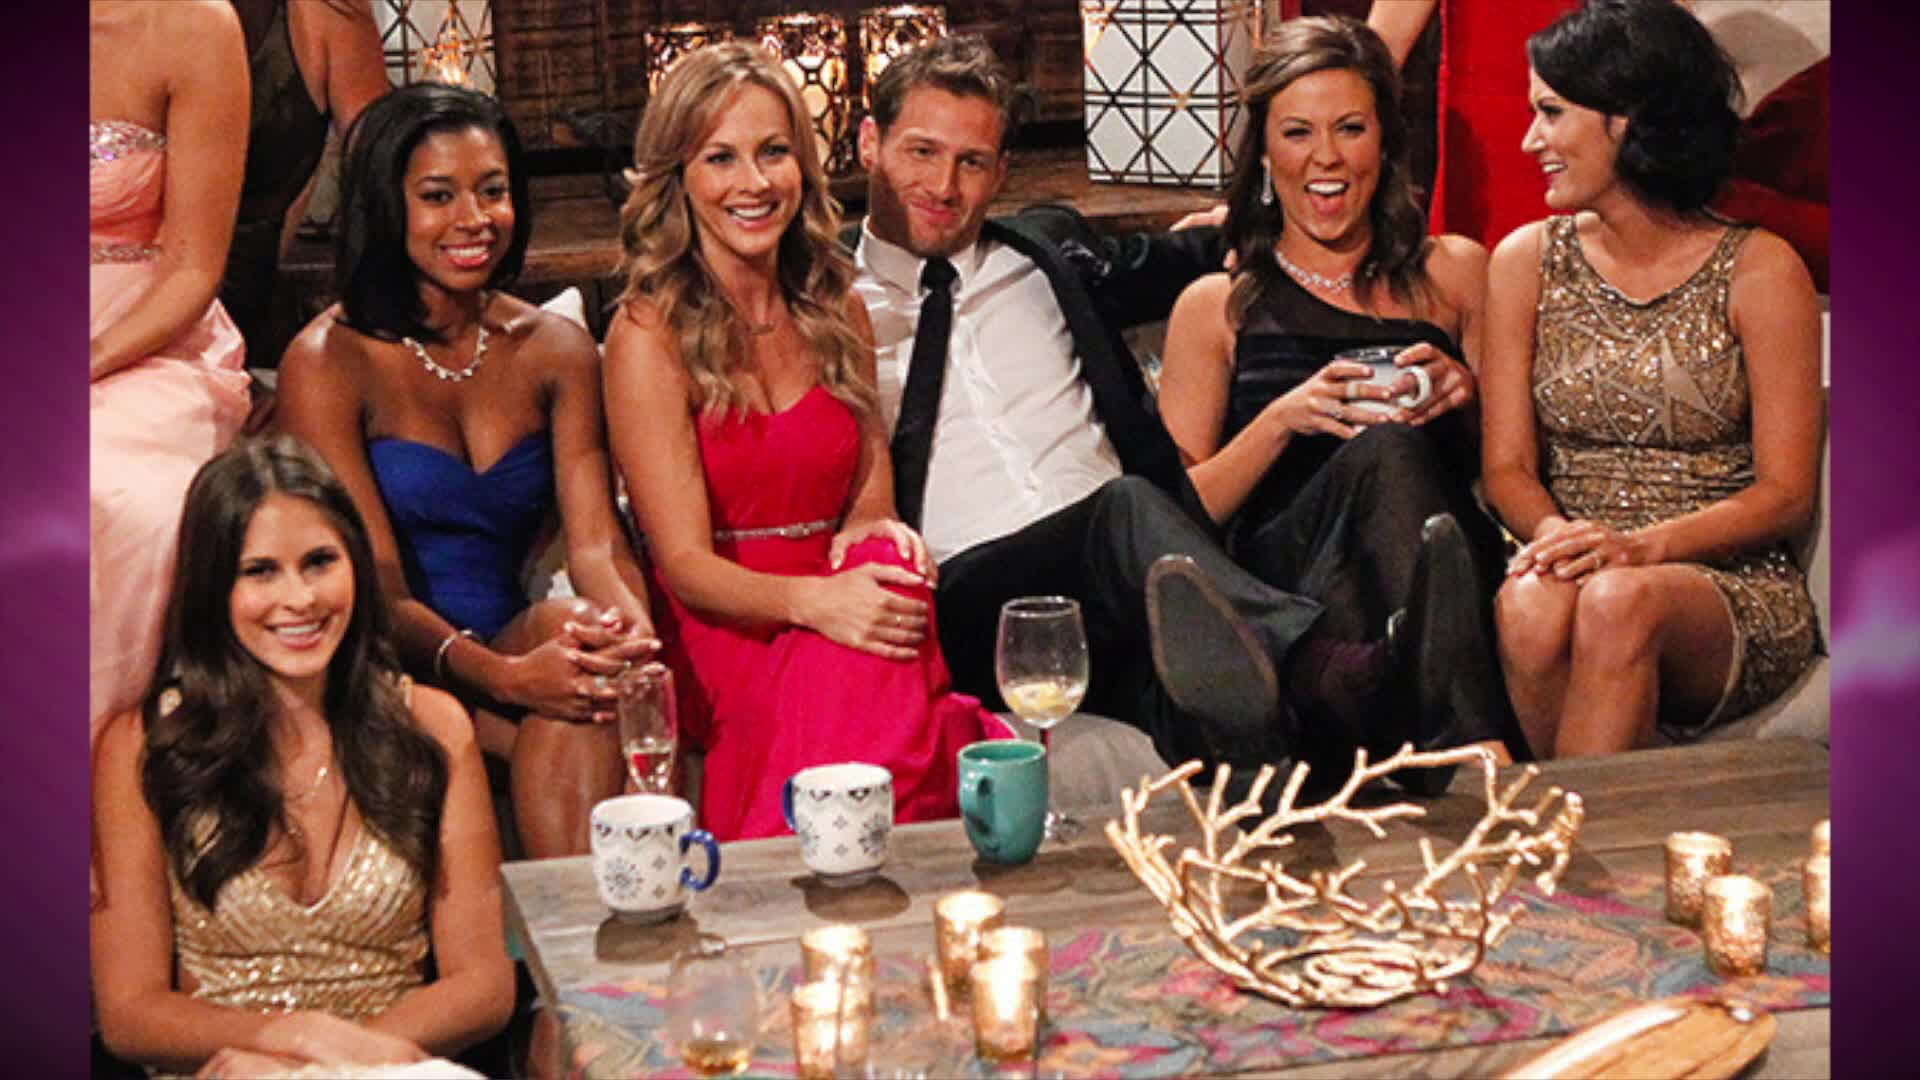 The Bachelor Spoilers 2014: Juan Pablo Galavis Final Four, WINNER